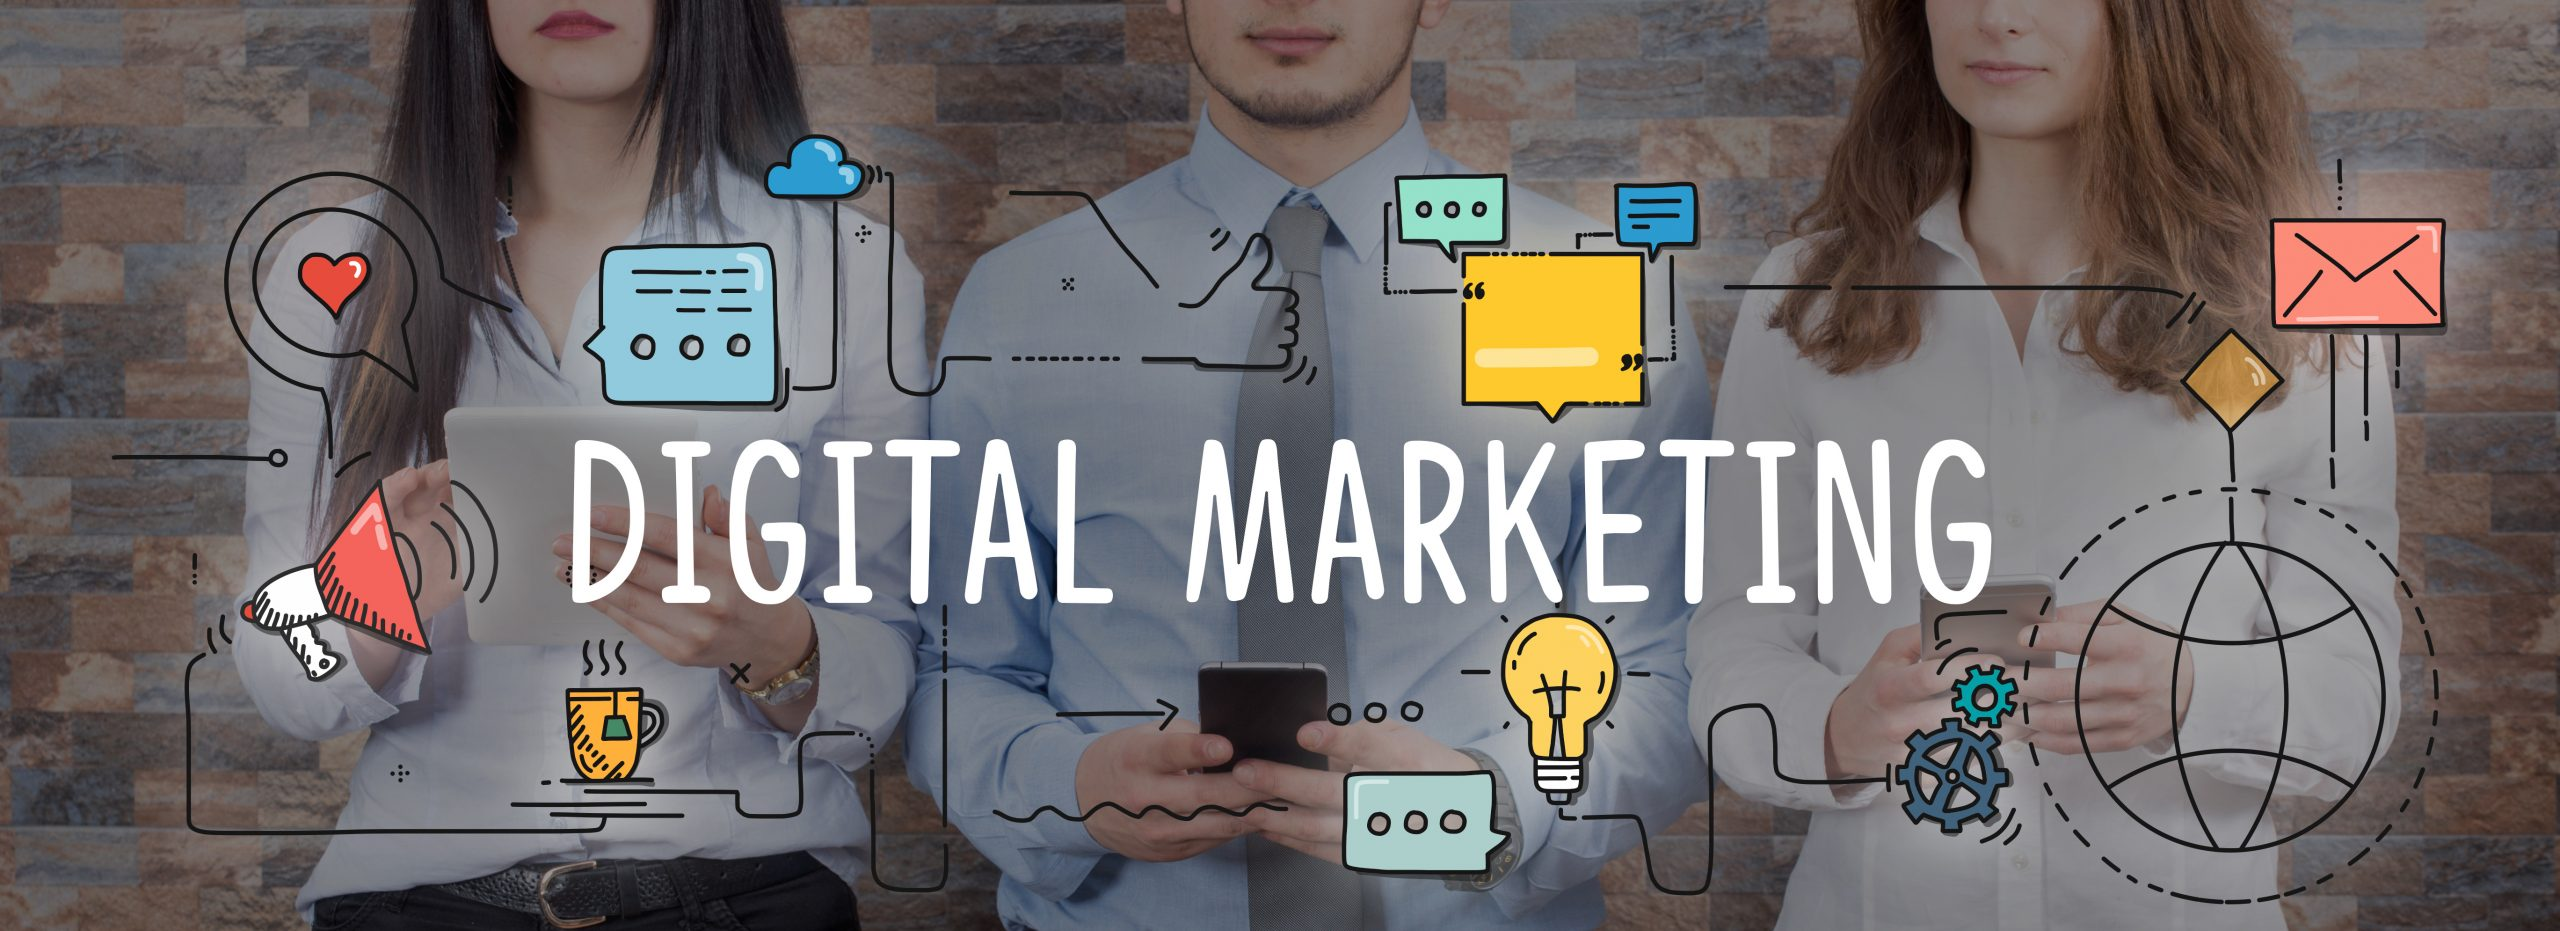 Digital Marketing Assistance